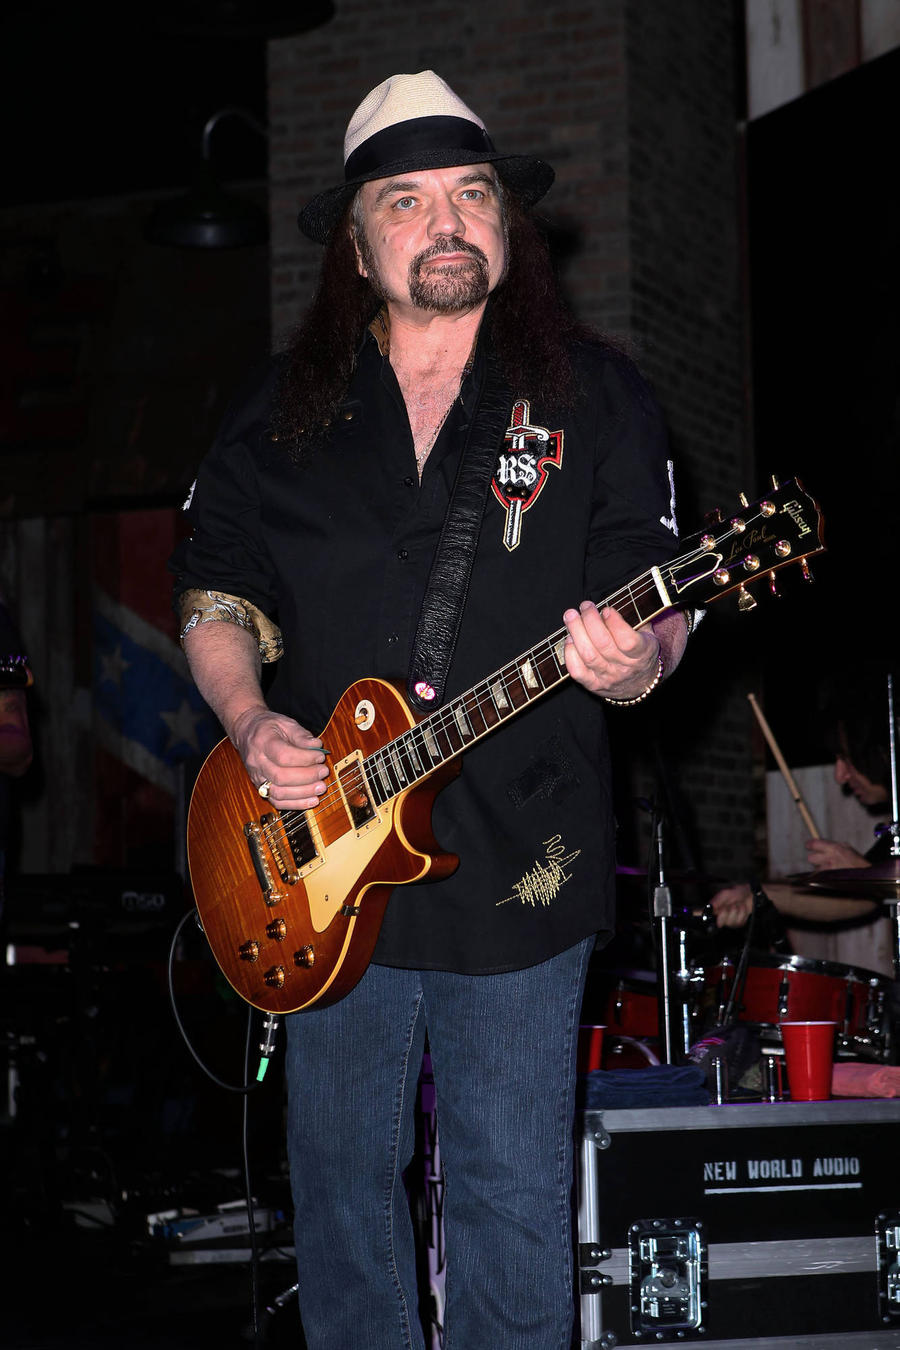 Gary Rossington's Chest Pains Prompt Lynyrd Skynyrd Show Cancellation